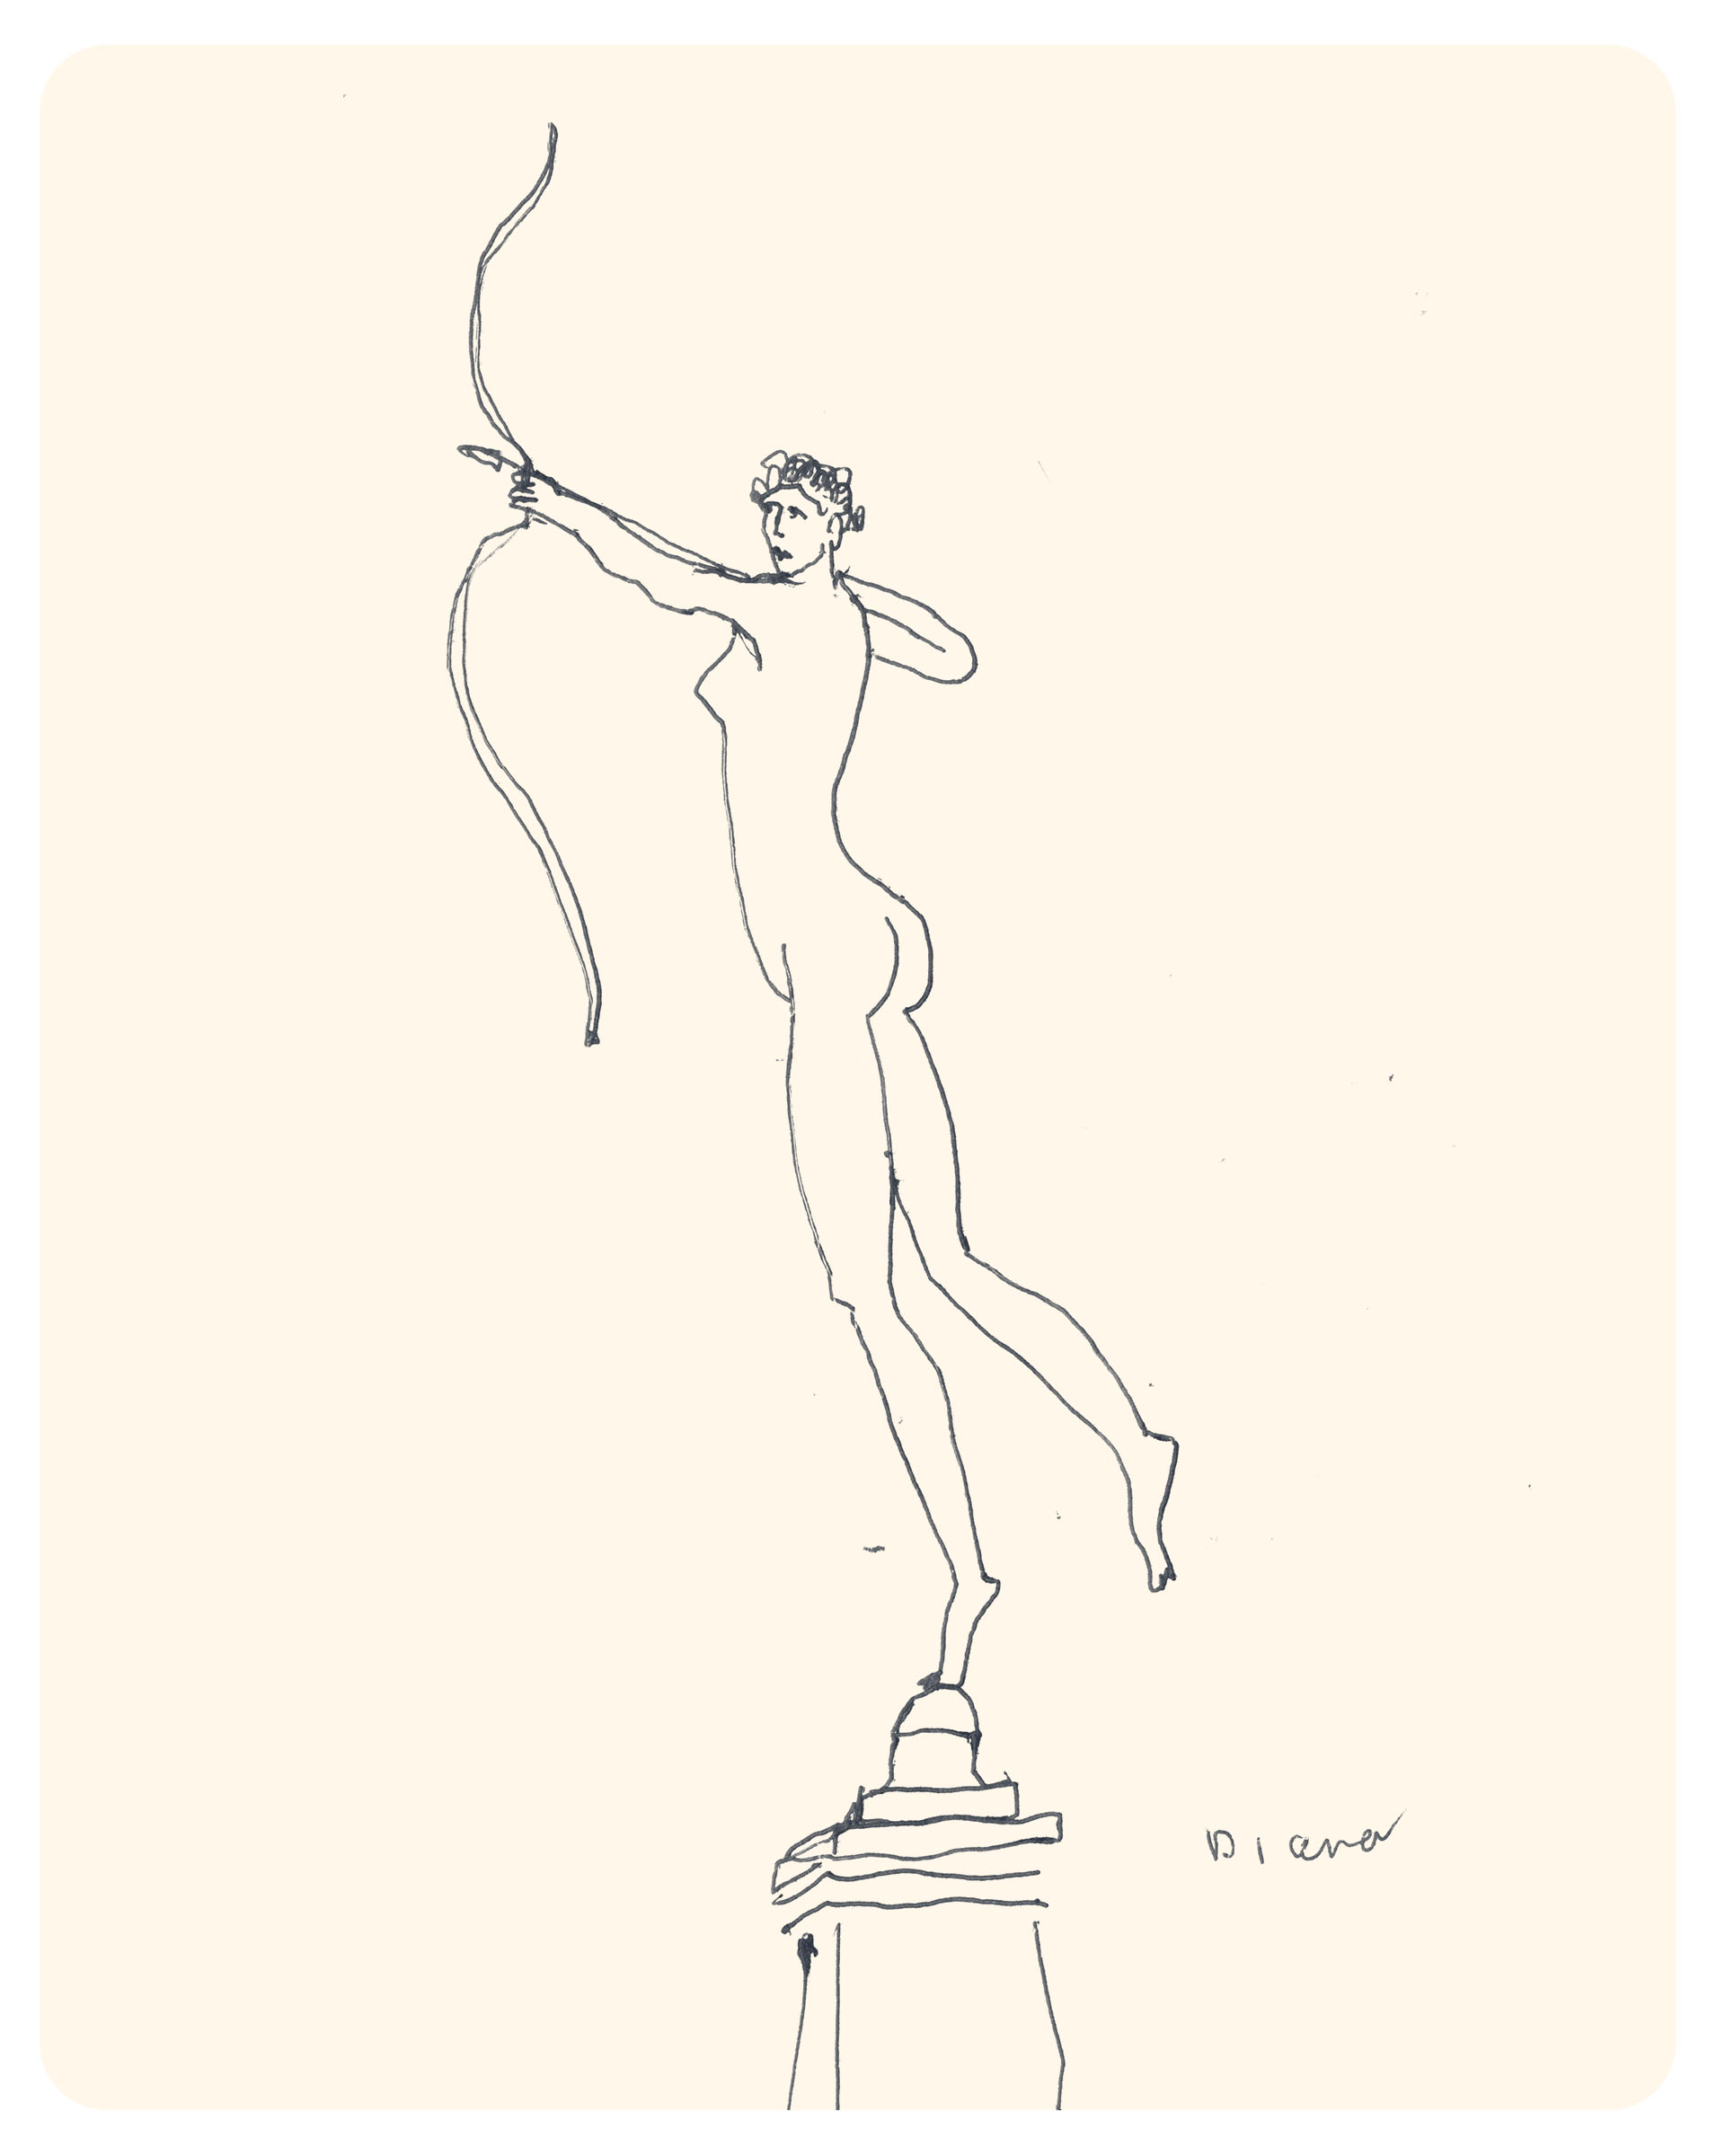 Sketch of Diana statue by Tom Froese